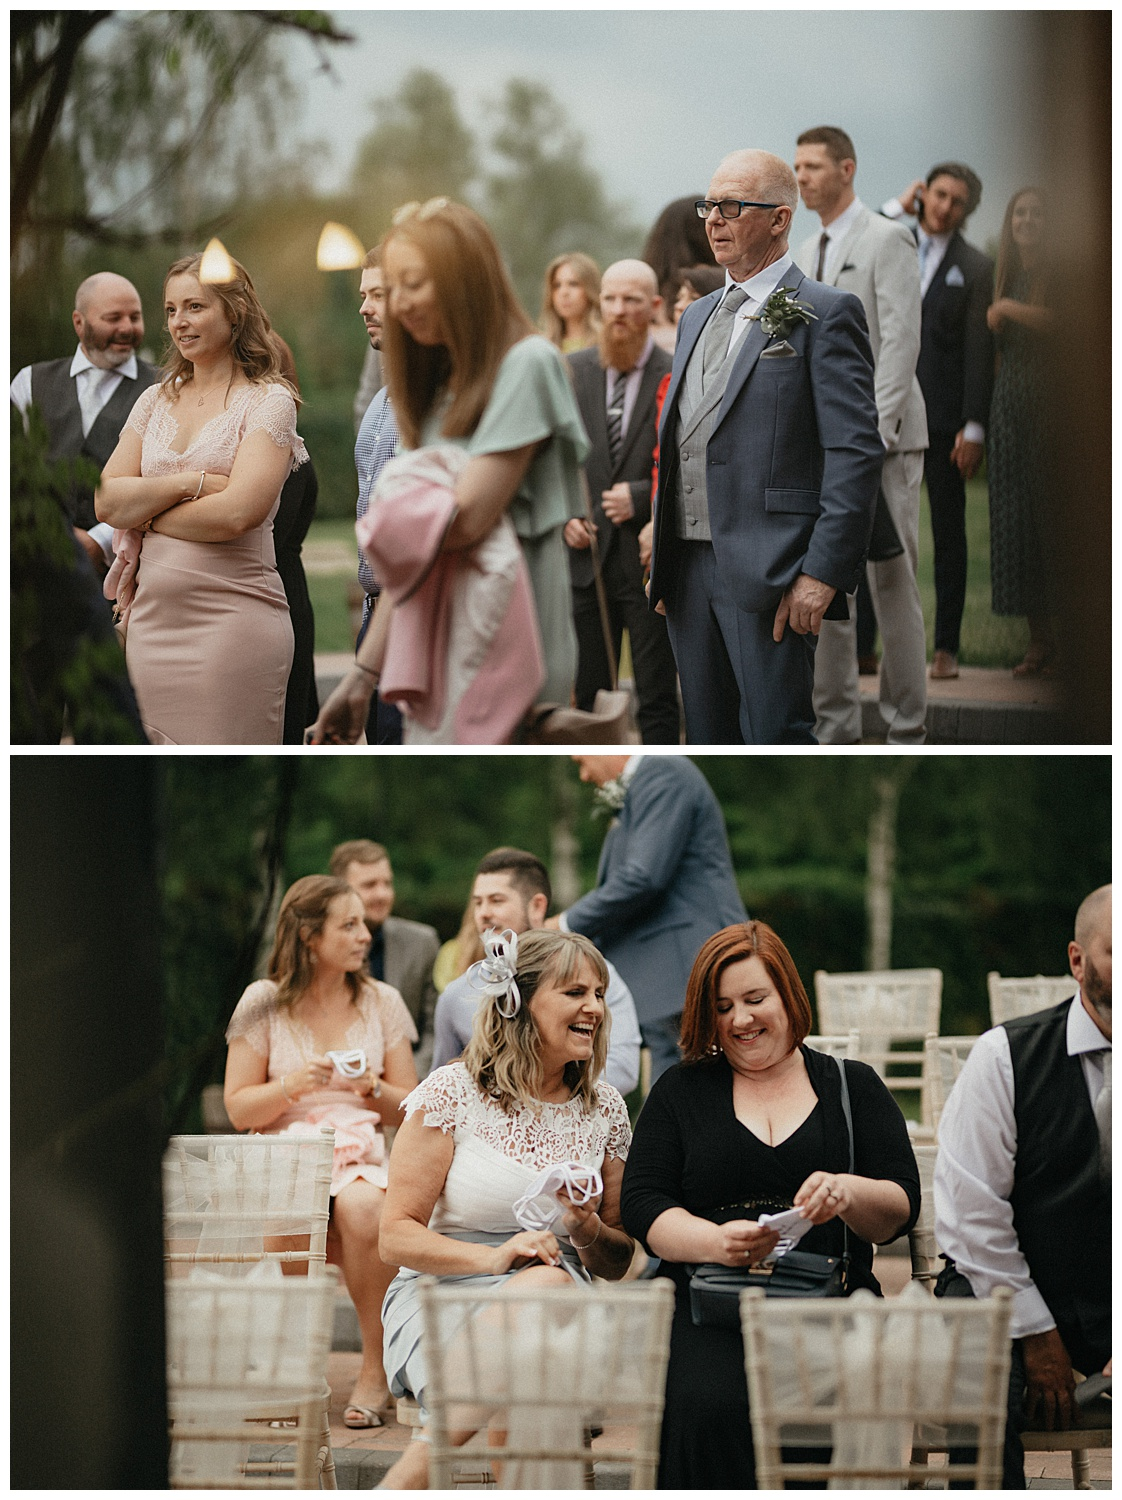 Weddings-at-Crondon-Park-the-wedding-guests-take-their-seats